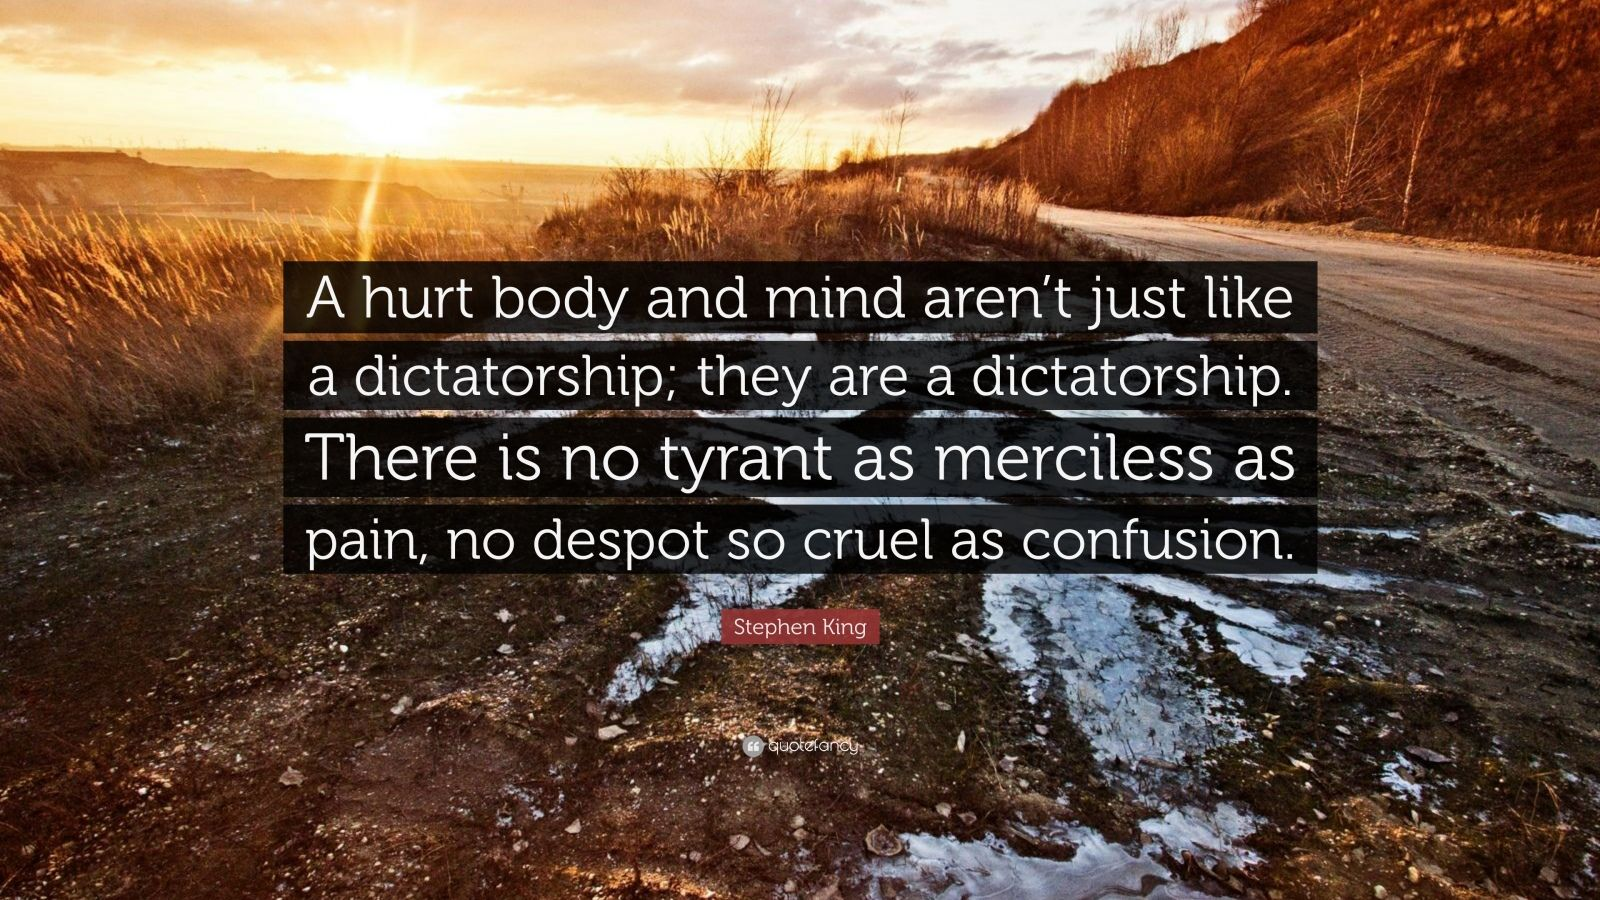 """Stephen King Quote: """"A hurt body and mind aren't just like a dictatorship; they are a dictatorship. There is no tyrant as merciless as pain, no despot so cruel as confusion."""""""